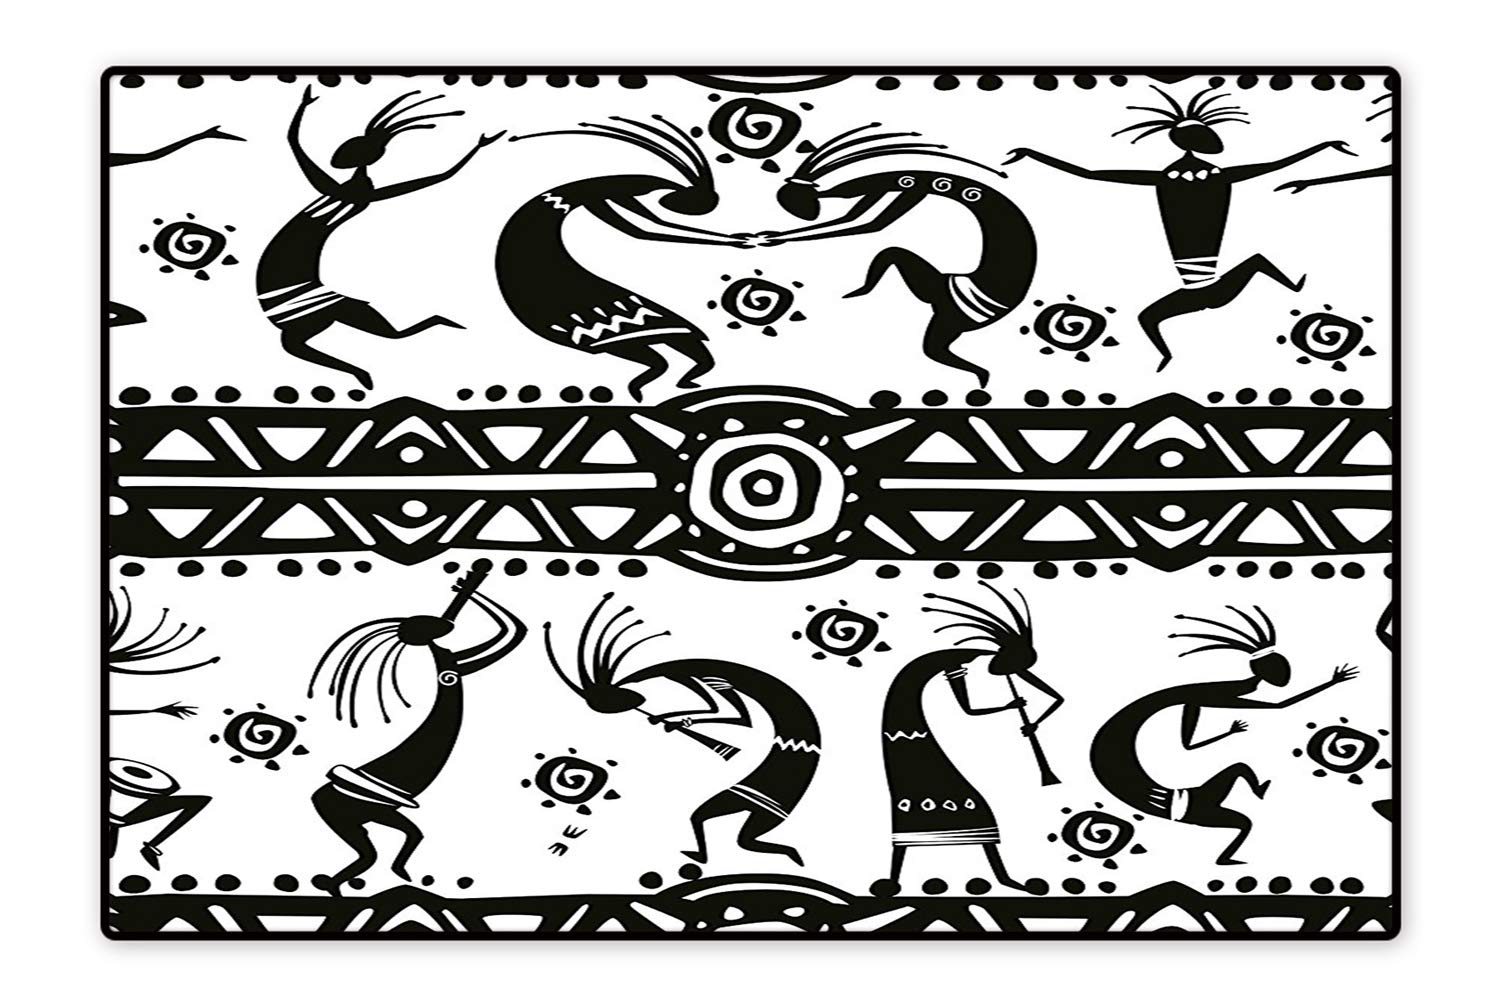 Area Rug Ethnic African Aztec Dance with Geometrical Borders Triangles Round Swirls Art Black and White Modern Watercolor Multicolor 4'x5'